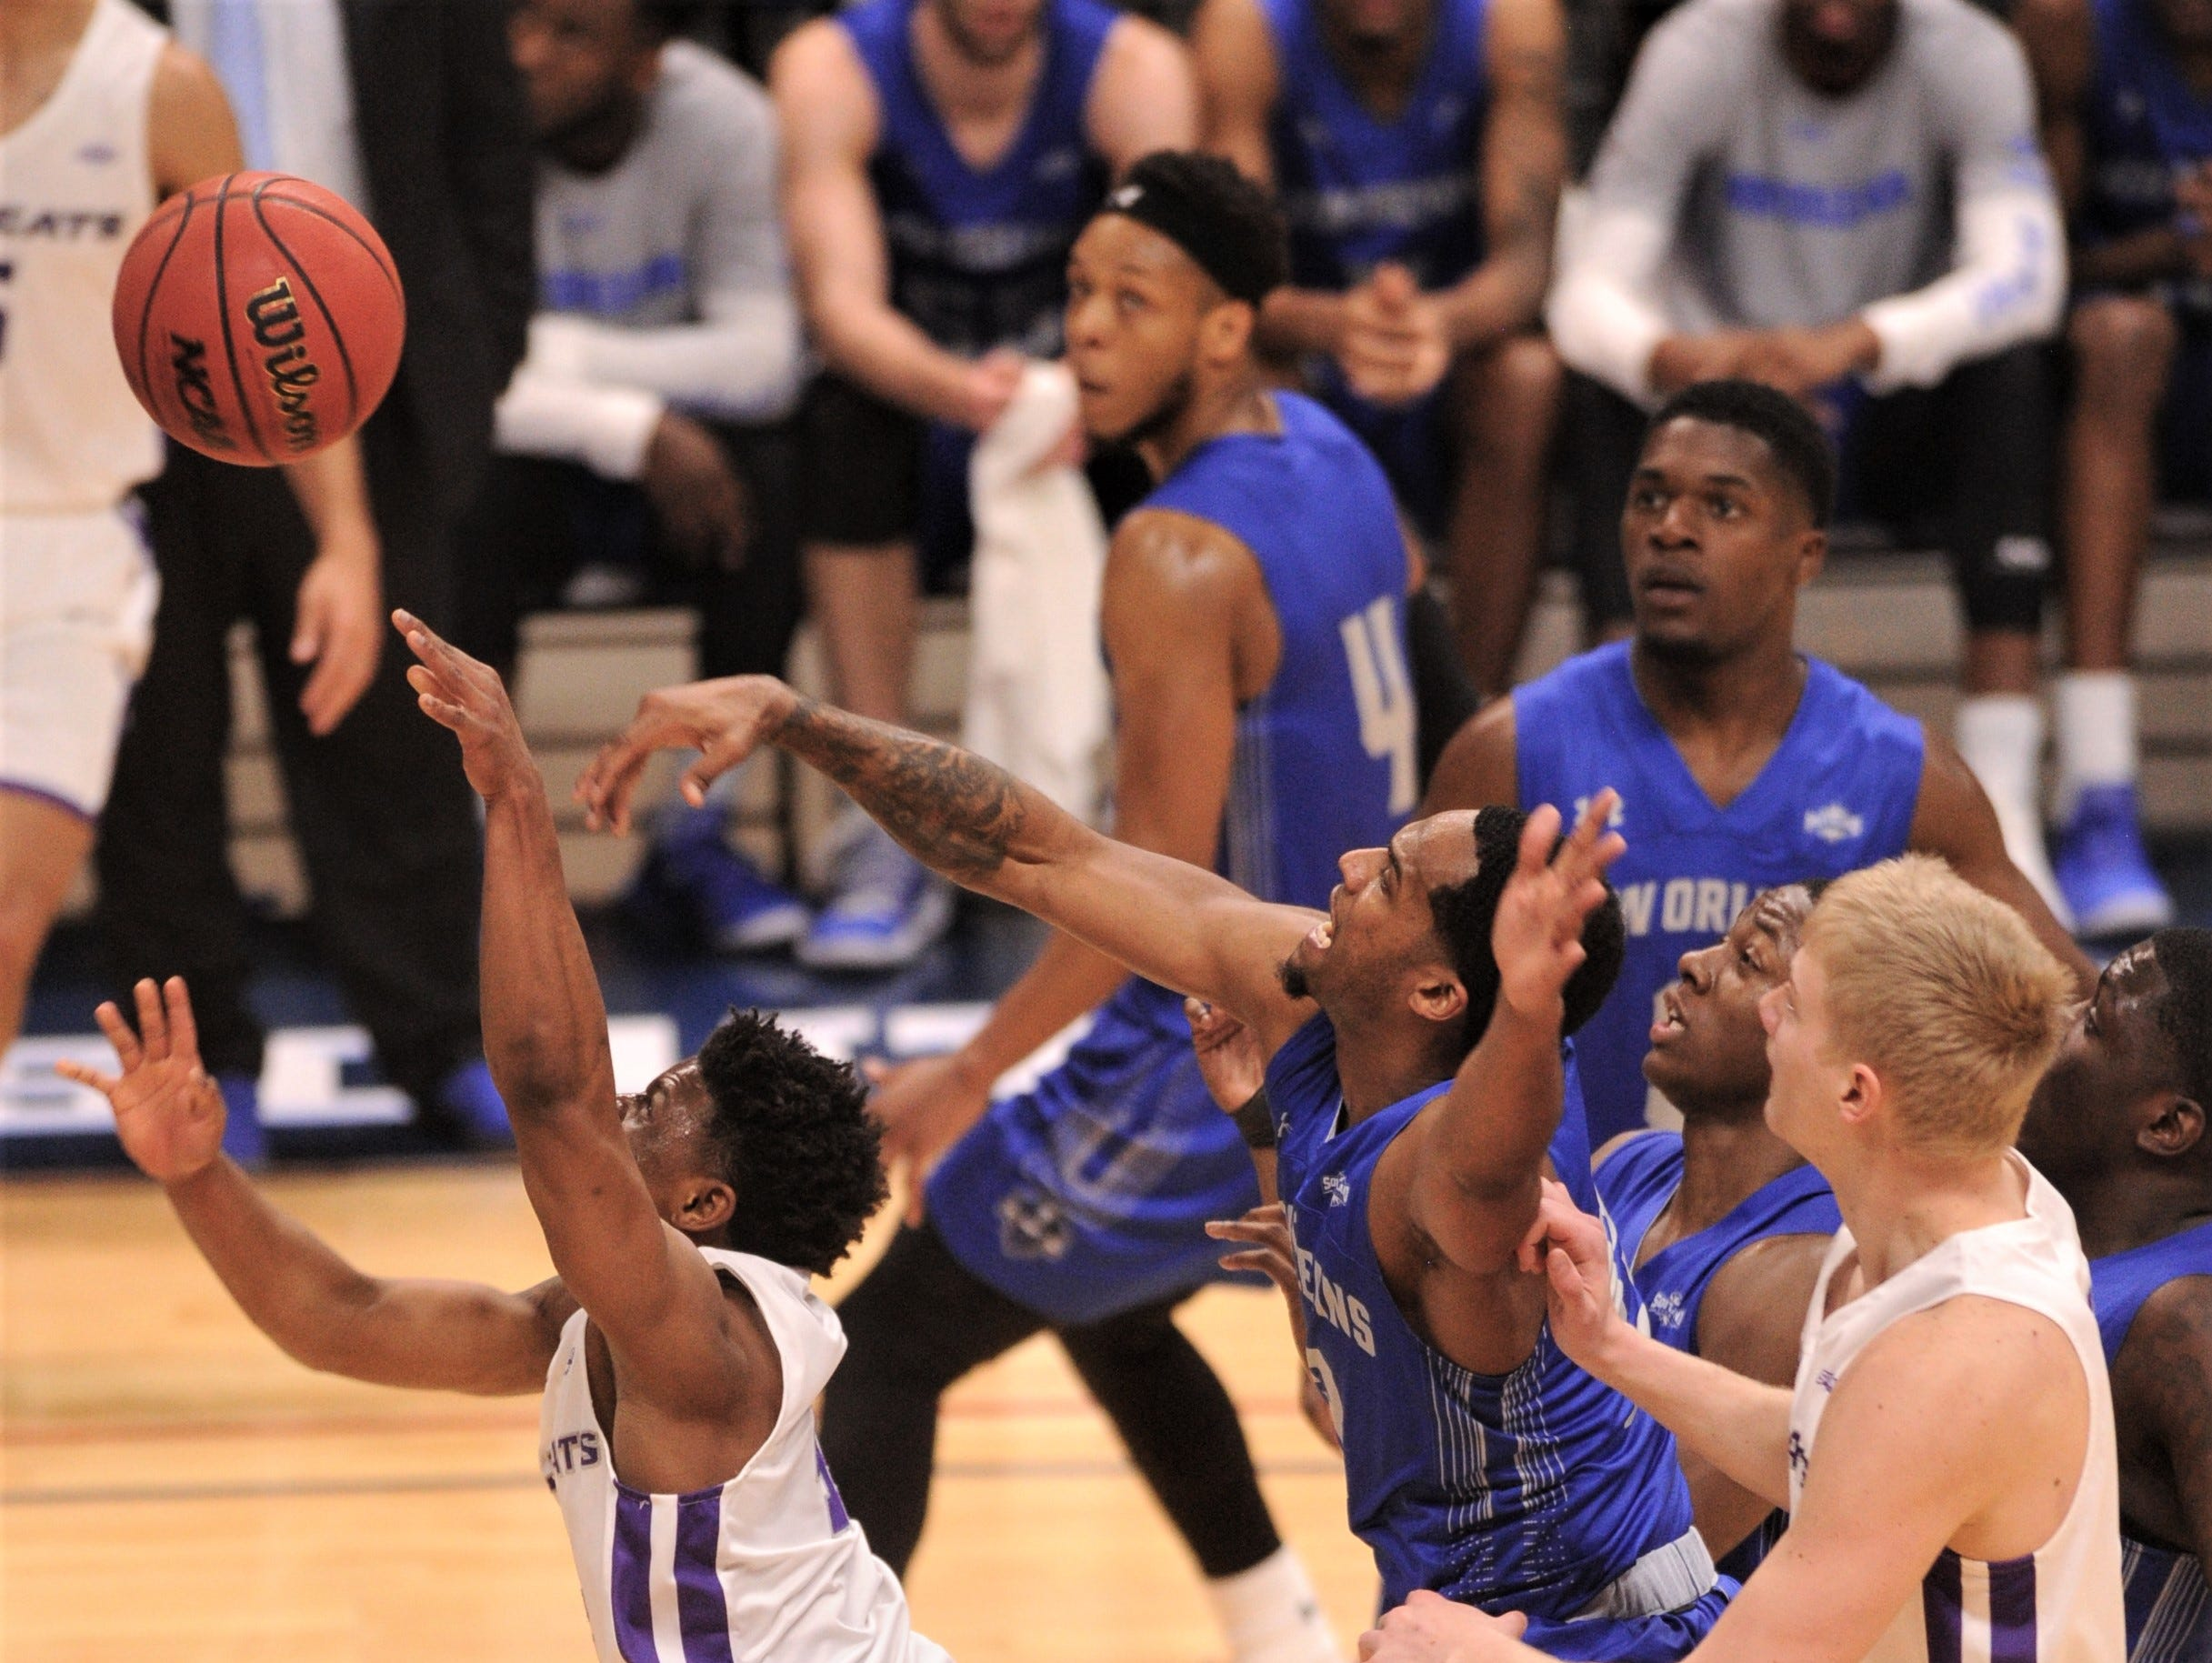 ACU's Damien Daniels, left, drives to the basket against the New Orleans defense. ACU beat the Privateers 77-60 to win the Southland Conference Tournament title Saturday, March 16, 2019, at the Merrell Center in Katy.